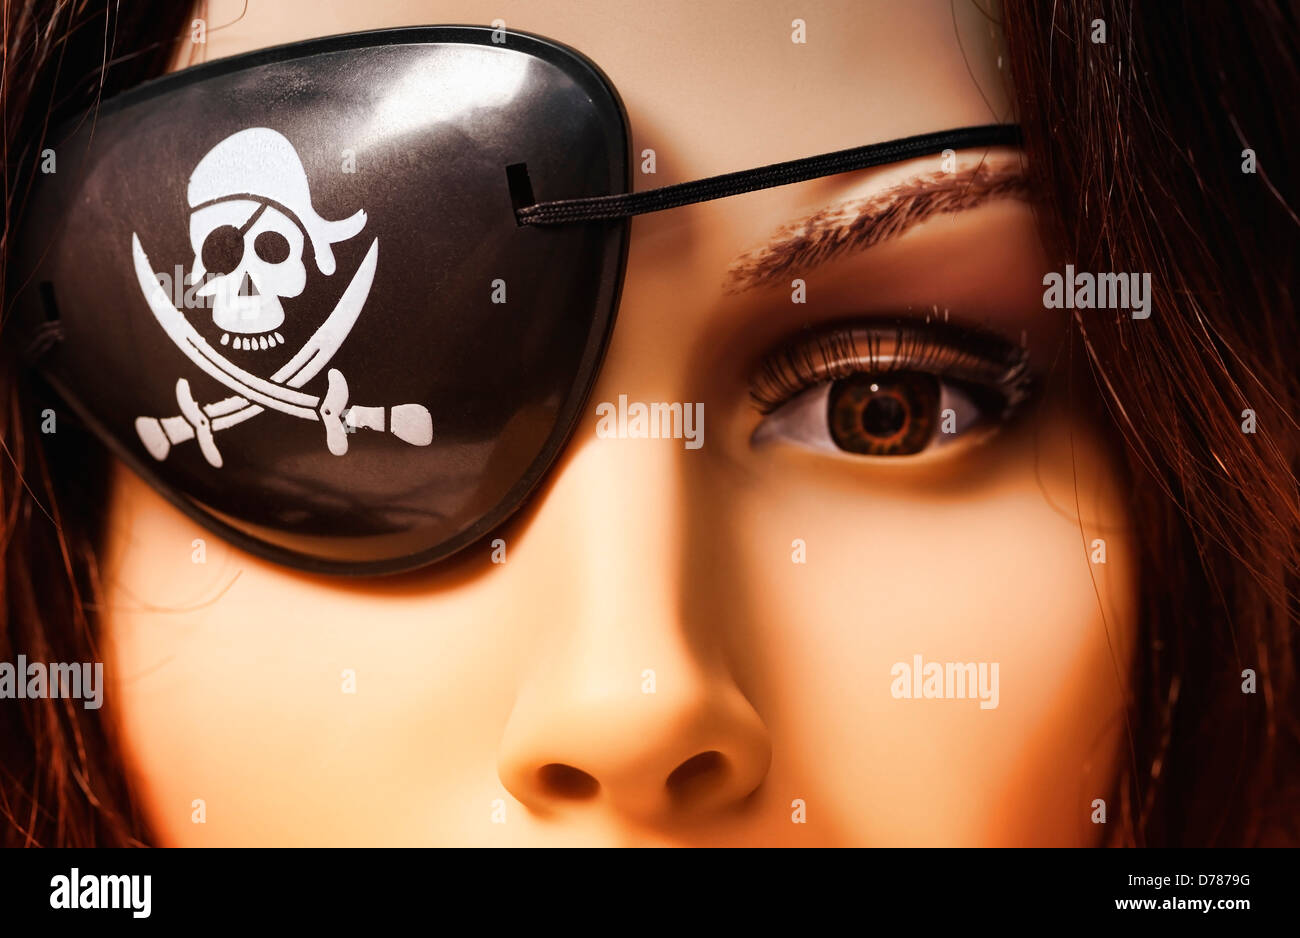 Doll with pirate's eye patch, symbolic photo pirate's party - Stock Image